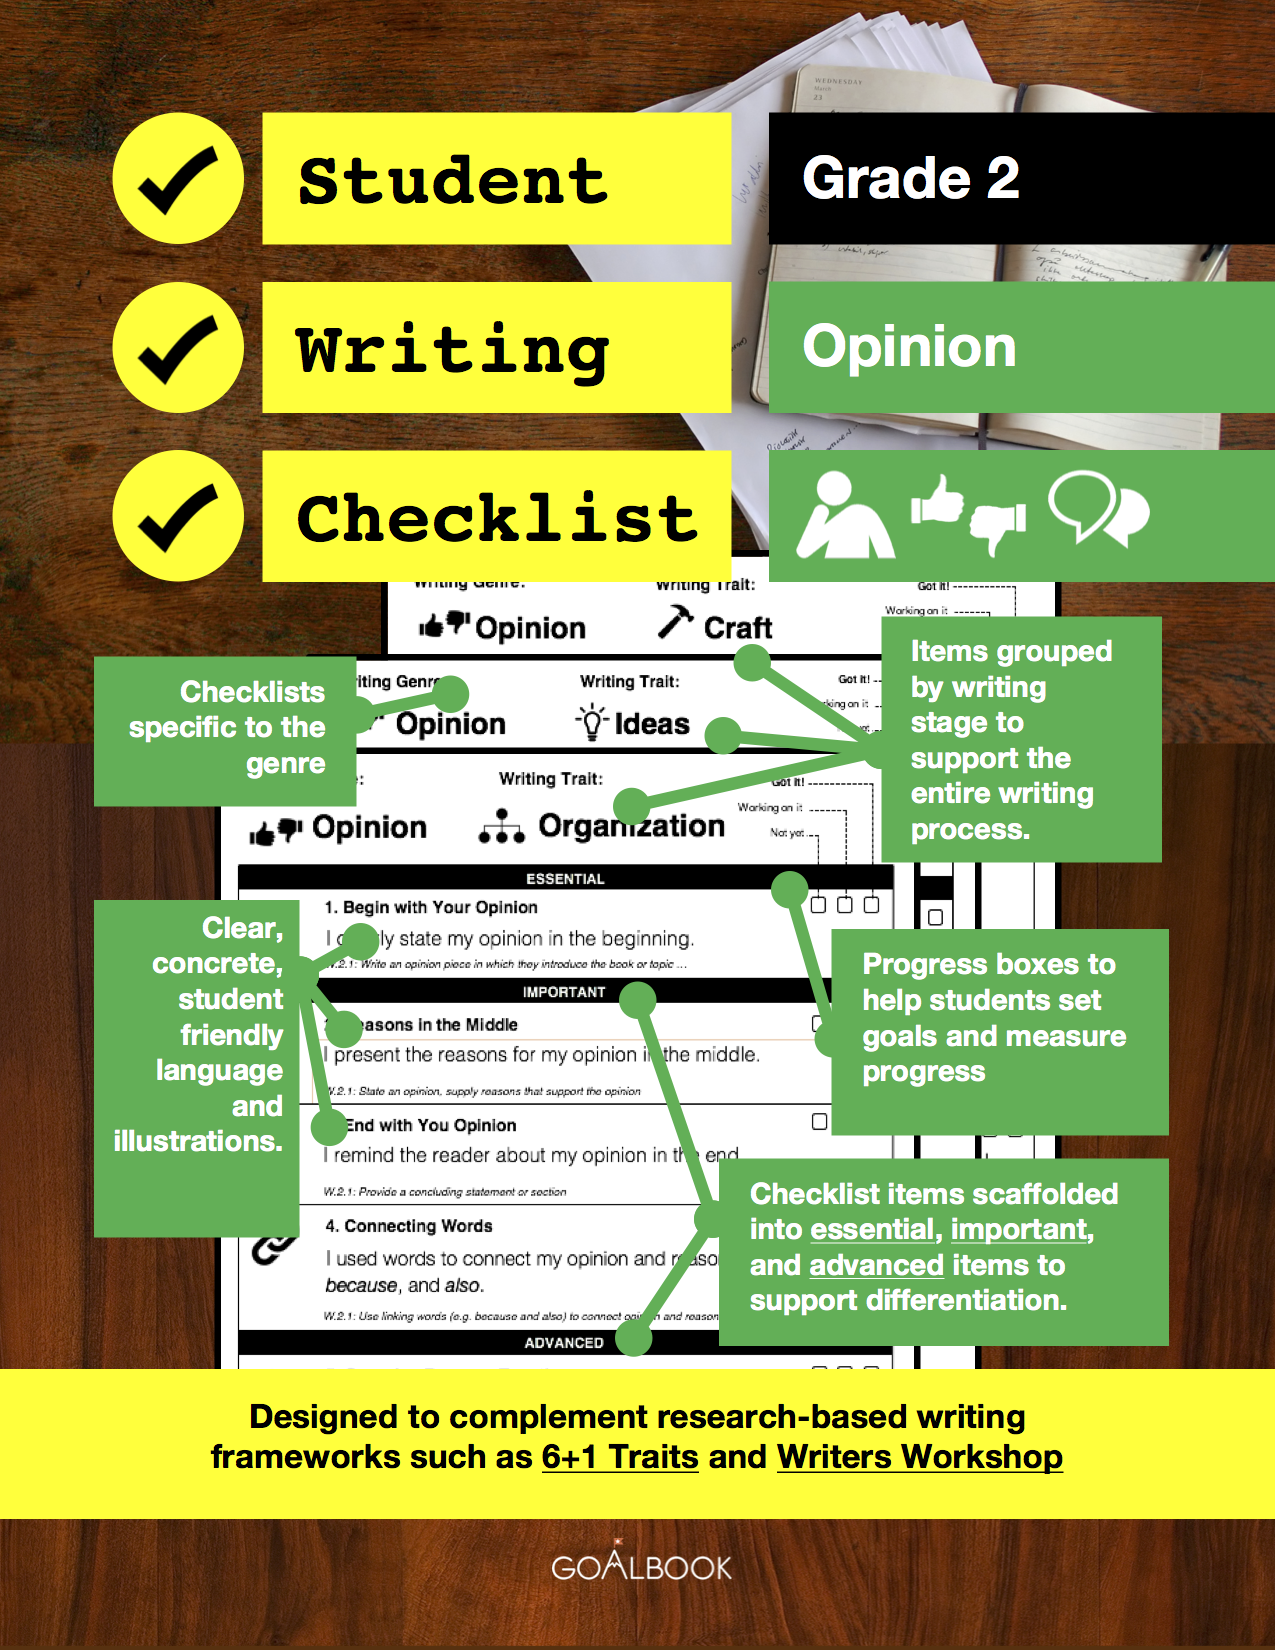 Student Writing Checklist: Opinion (Grade 2)